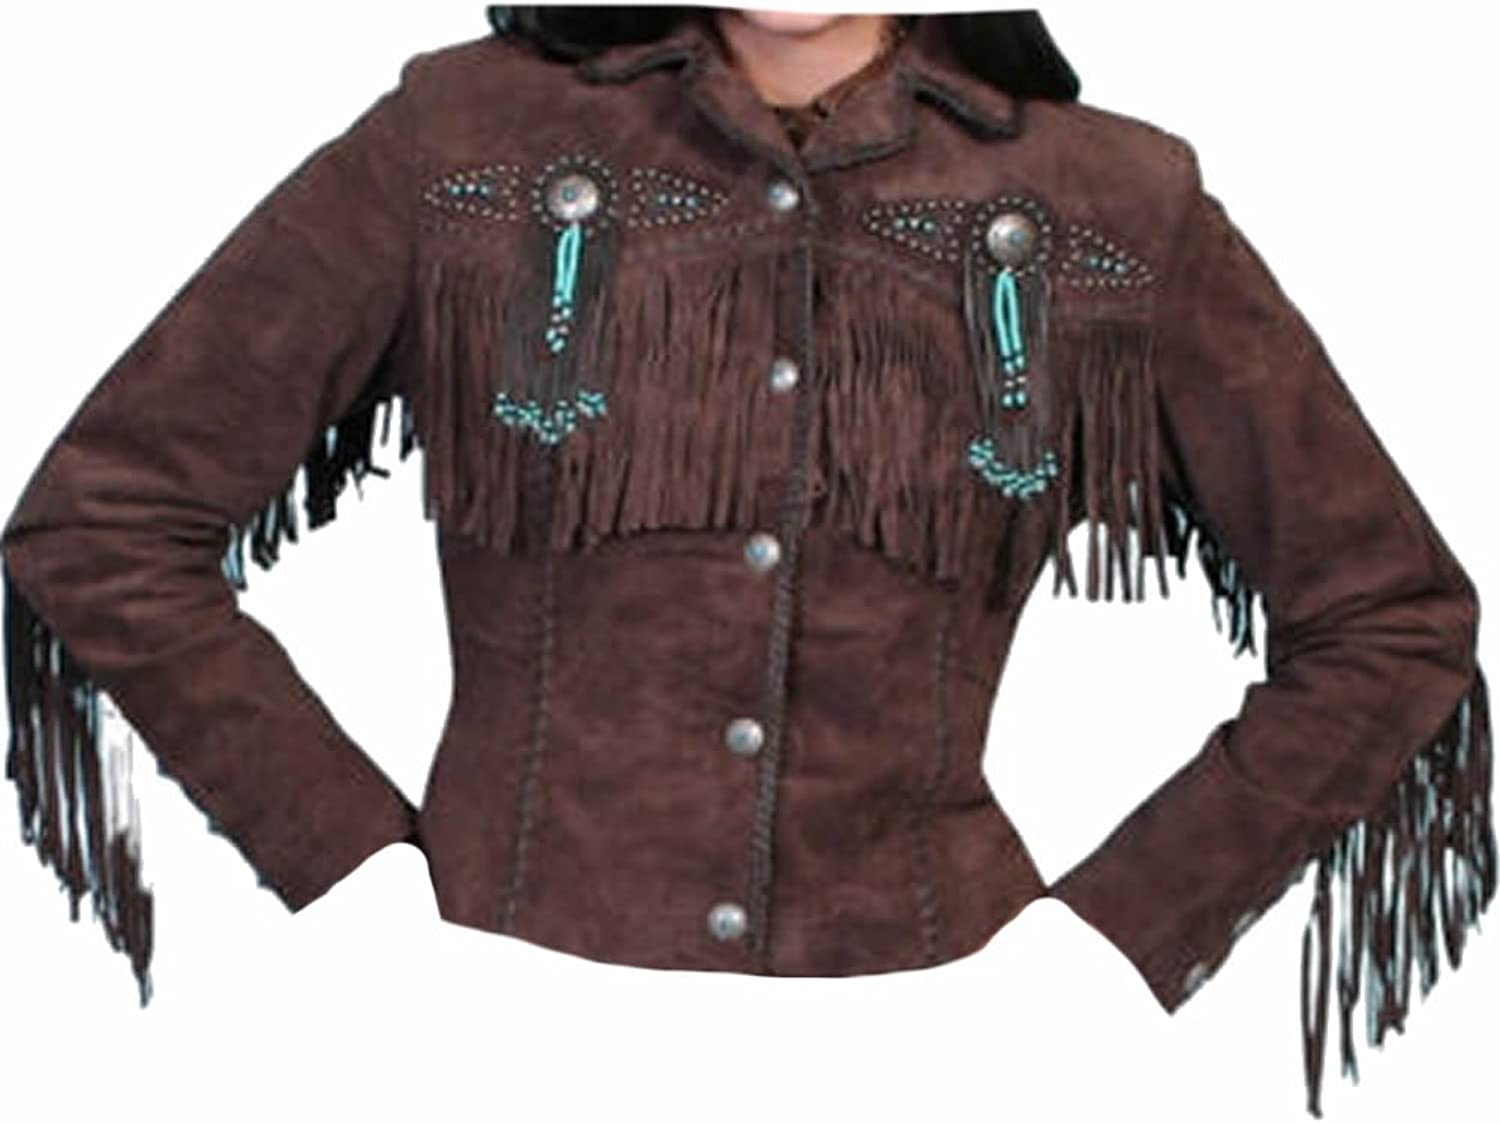 Classyak Women's Fringed and Beaded Suede Leather Jacket